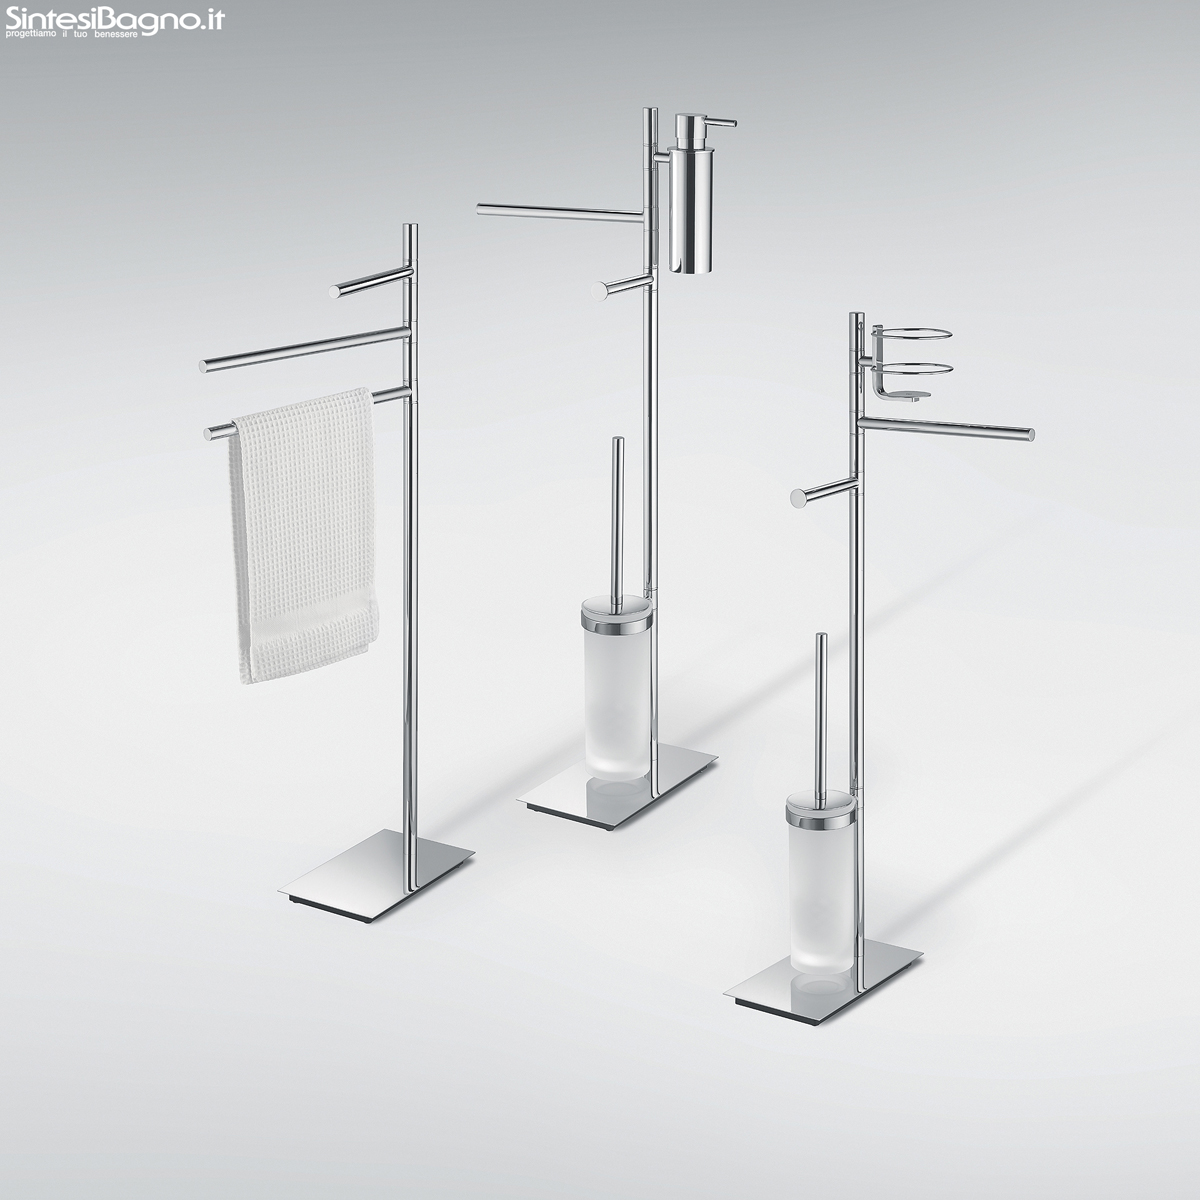 Piantane e colonne serie square di colombo design for Accessori moderni per bagno